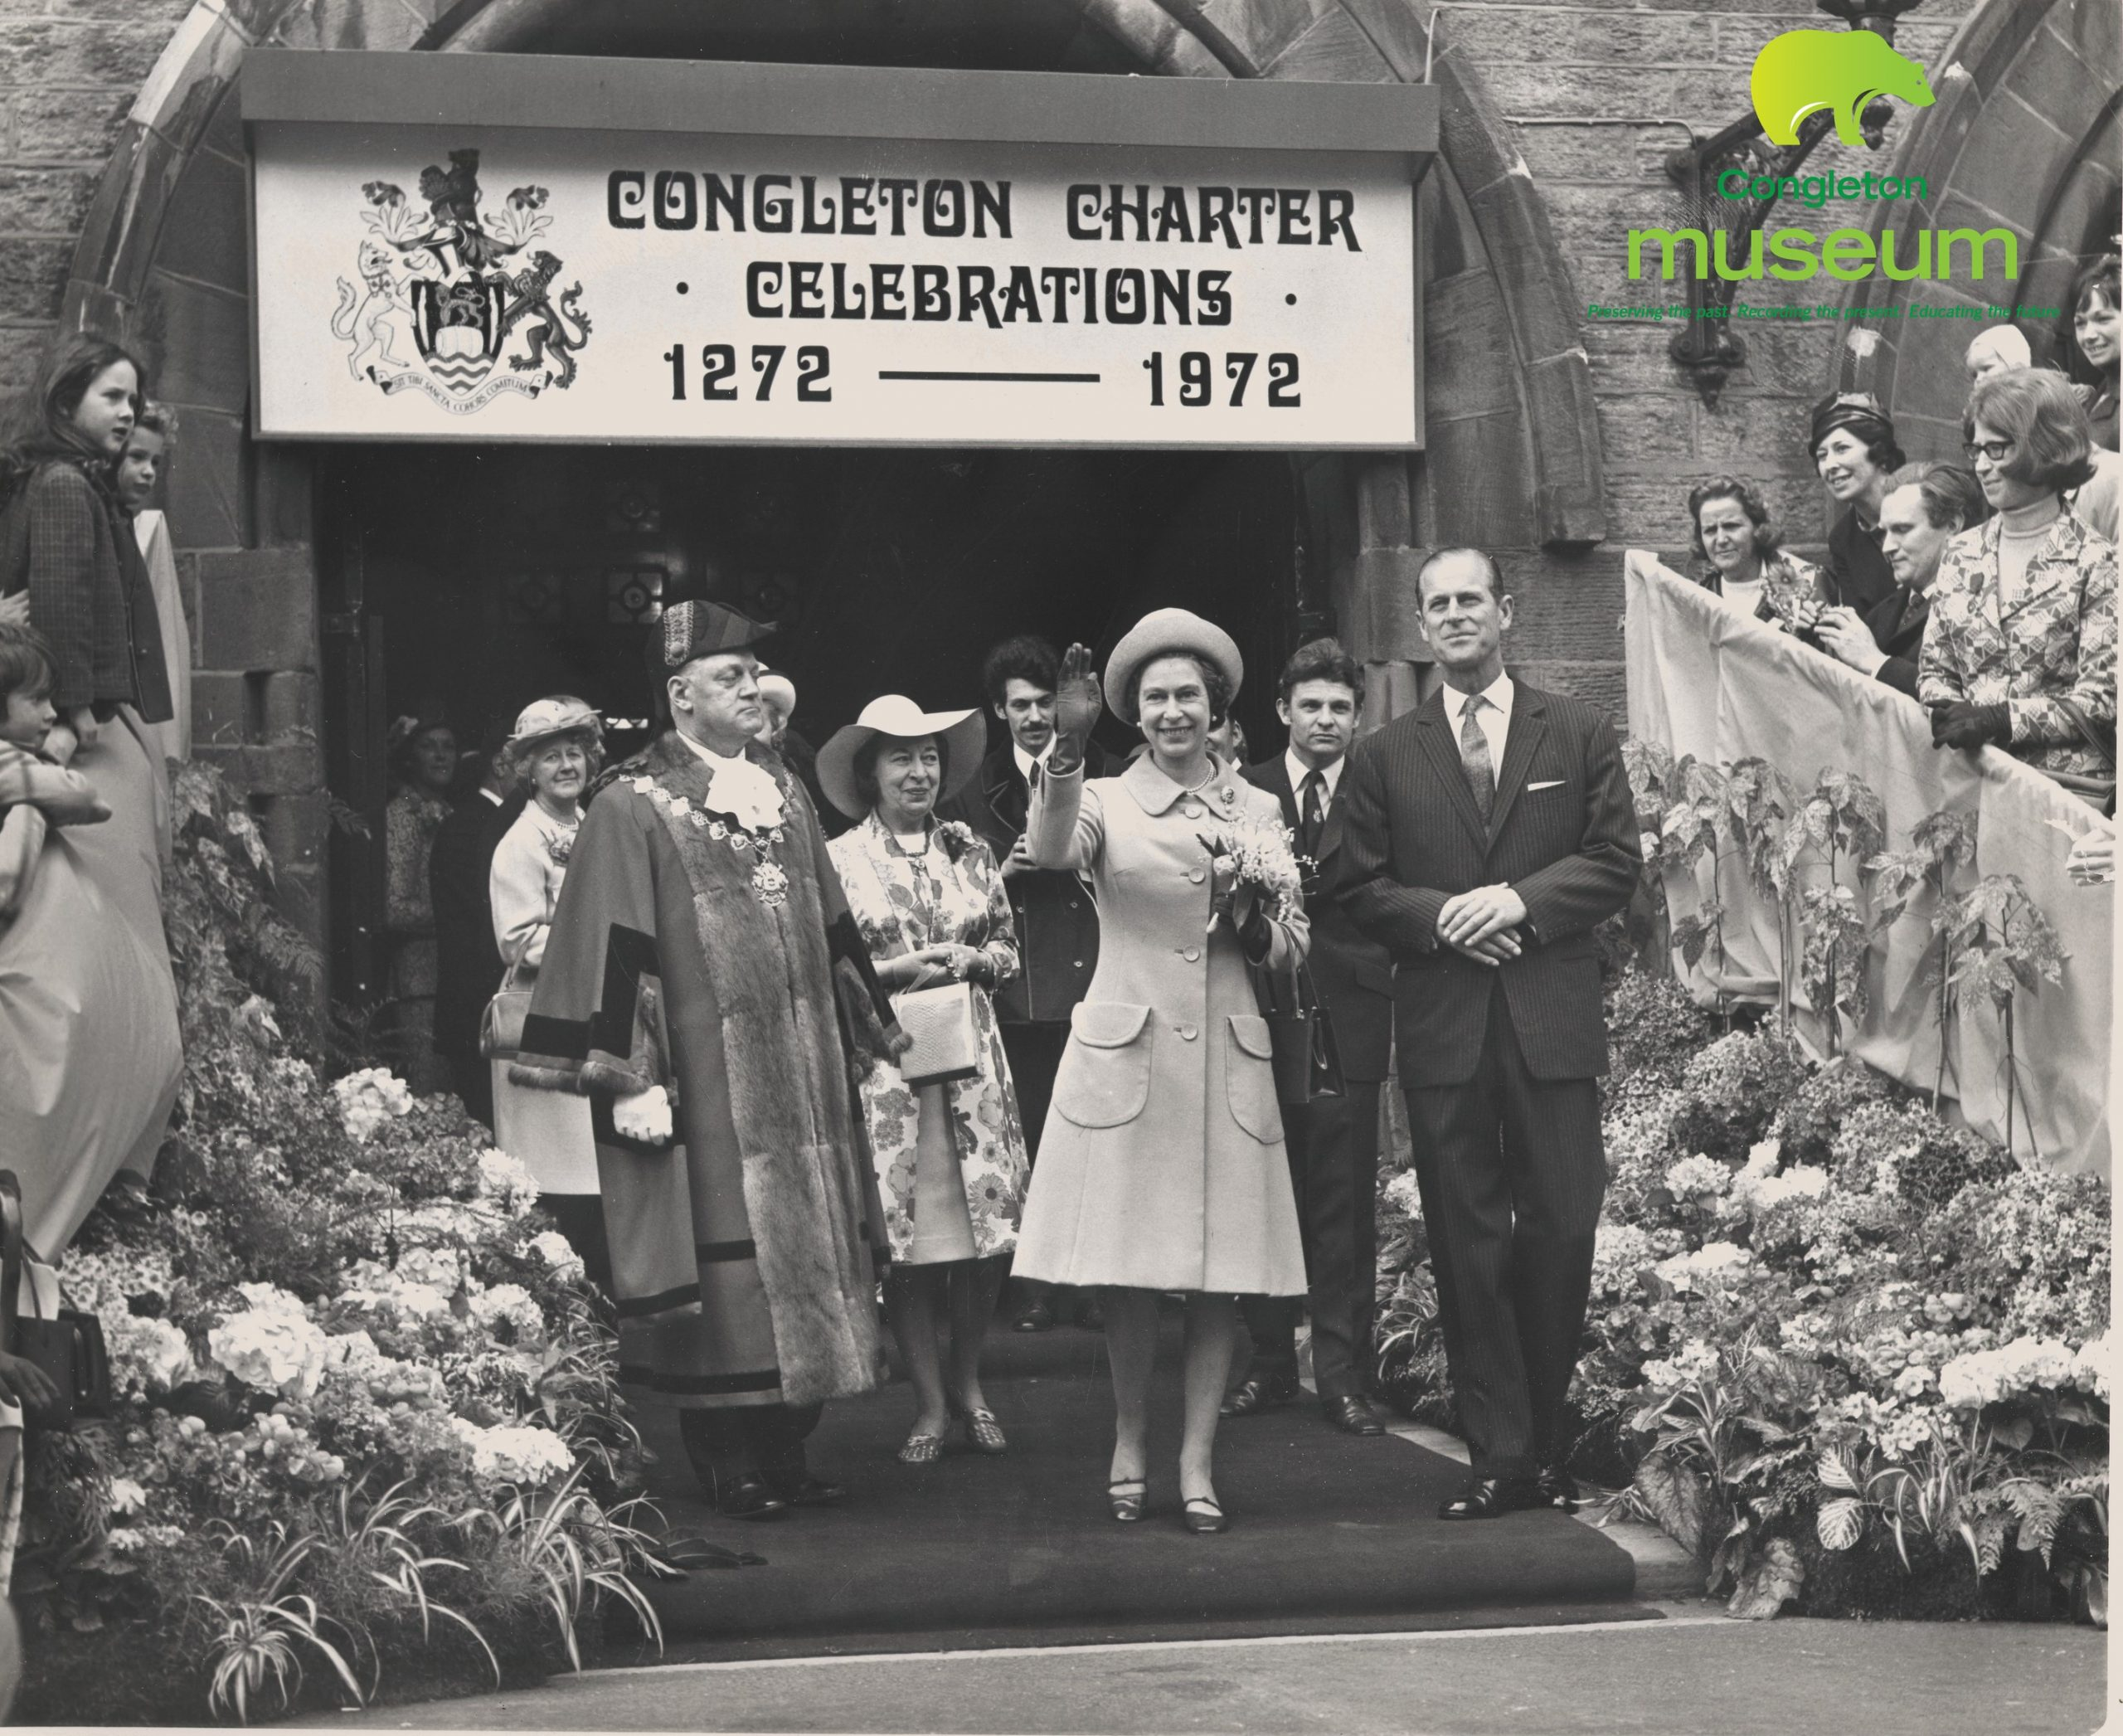 The Queen visits Congleton 1972